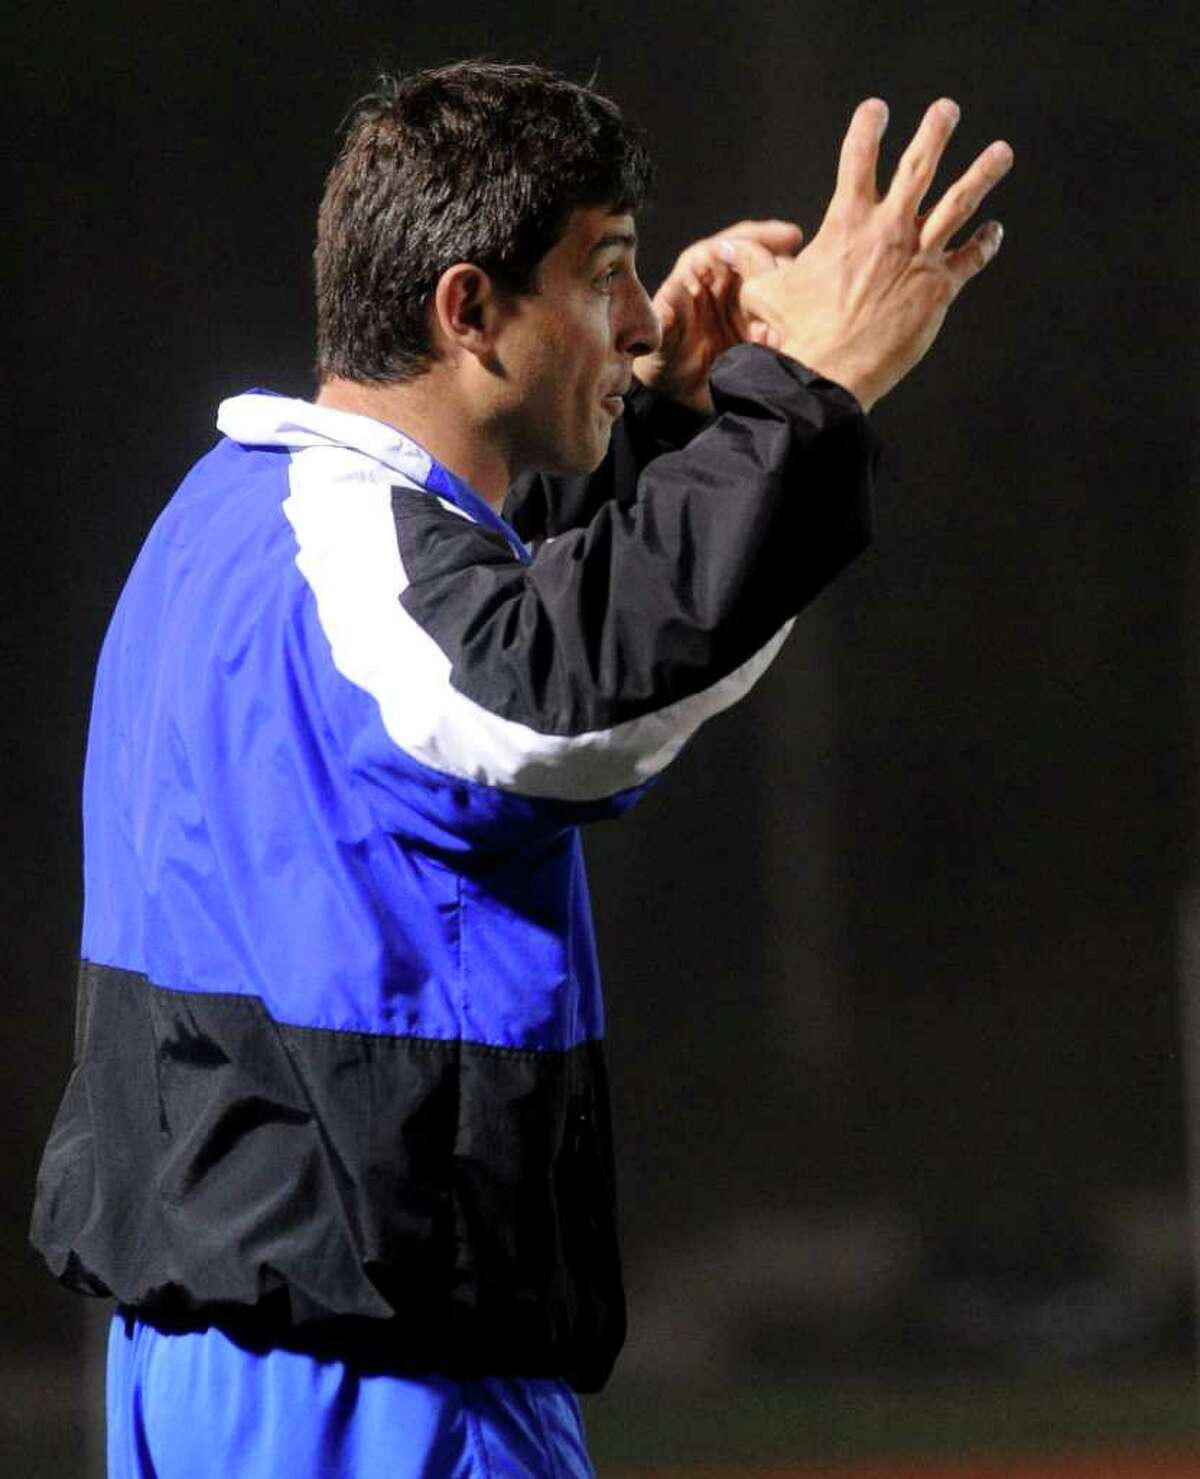 Ludlowe coach Chris Parisi talks to a referee during Wednesday's lacrosse game against New Canaan at Fairfield Ludlowe High School on April 27, 2011.